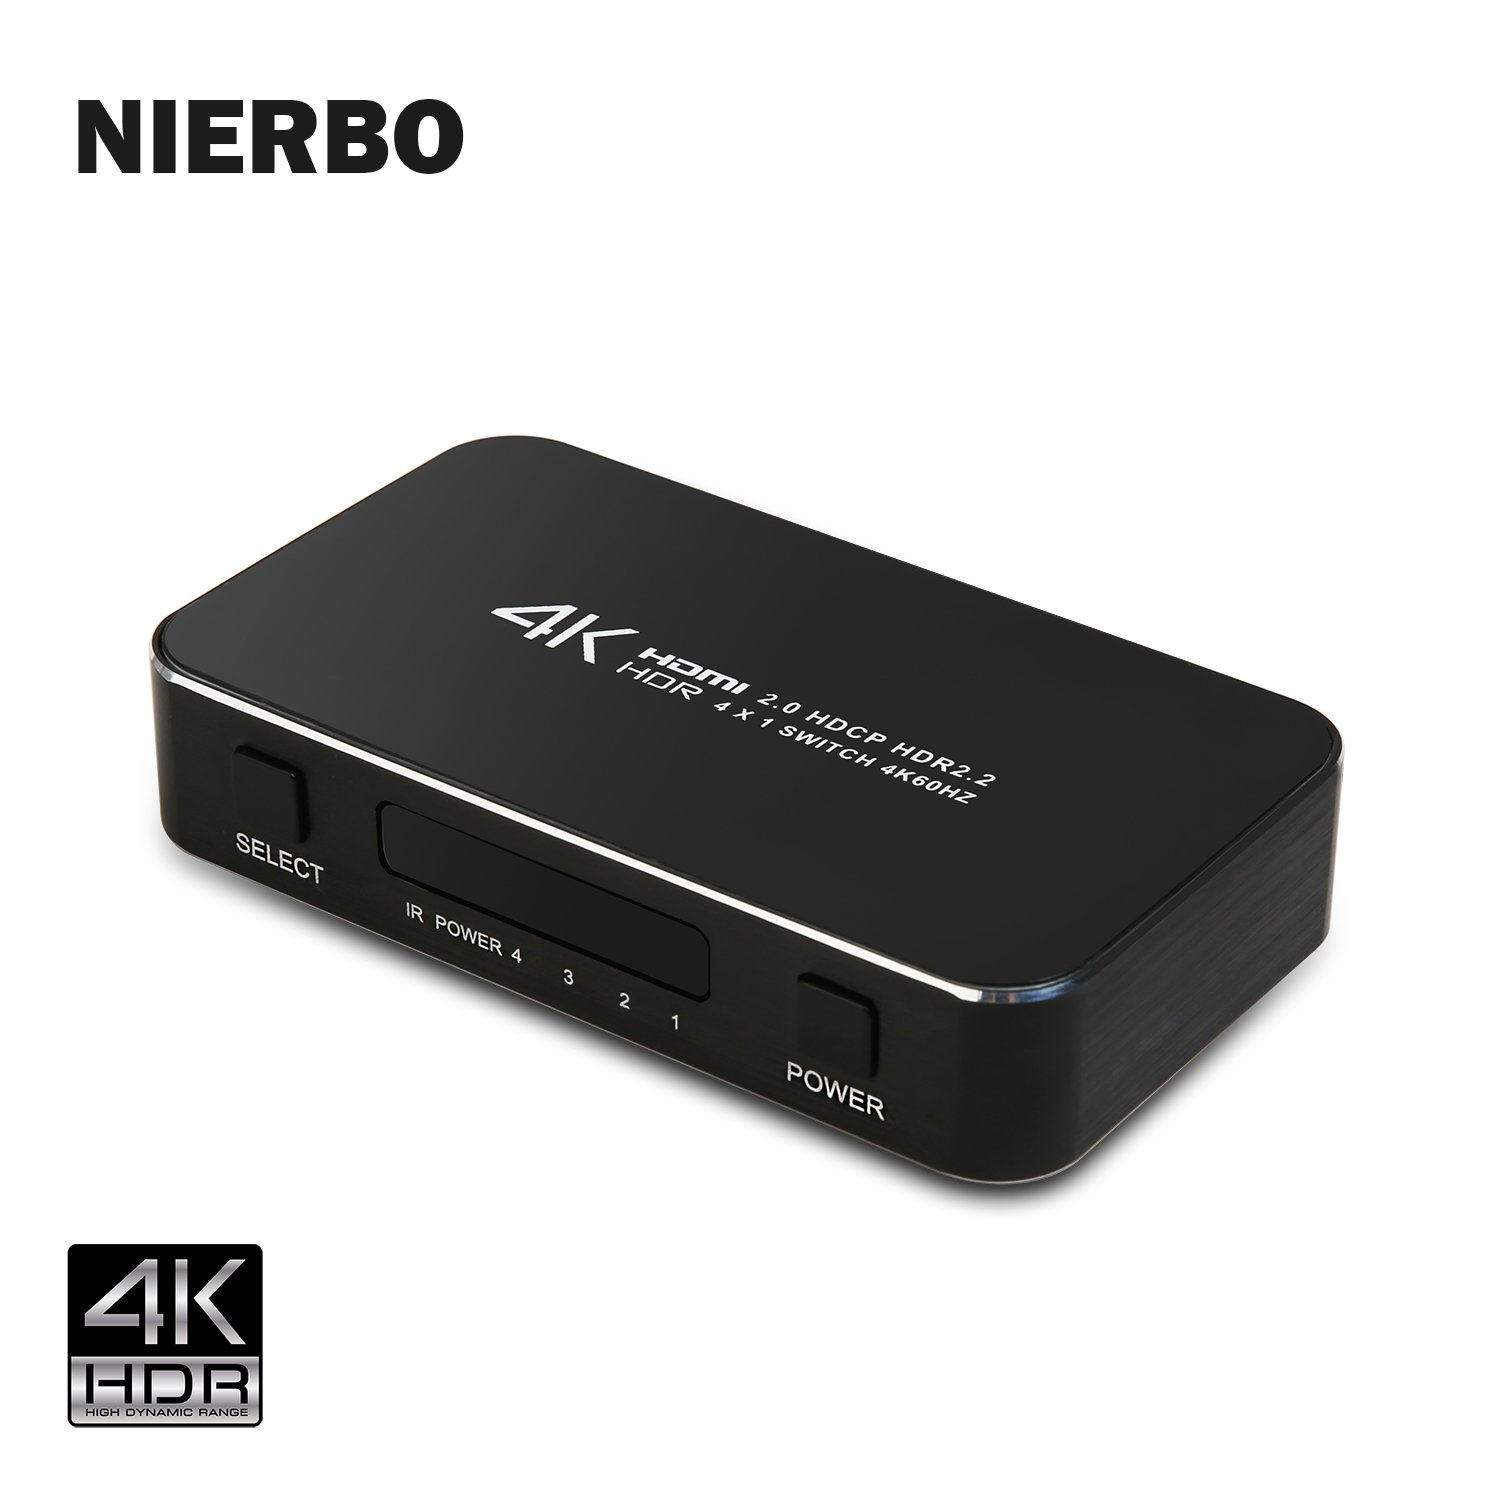 HDMI Switcher with an IR Remote 4 Input 1 Output, NIERBO Switch HDMI 4x1 4K x 2K HDMI Switch 4k @ 60Hz 2.0 Version Full HD 1080P HDCP Switcher 3D for HDTV PS3 PS4 BLU-Ray DVD TV Projector